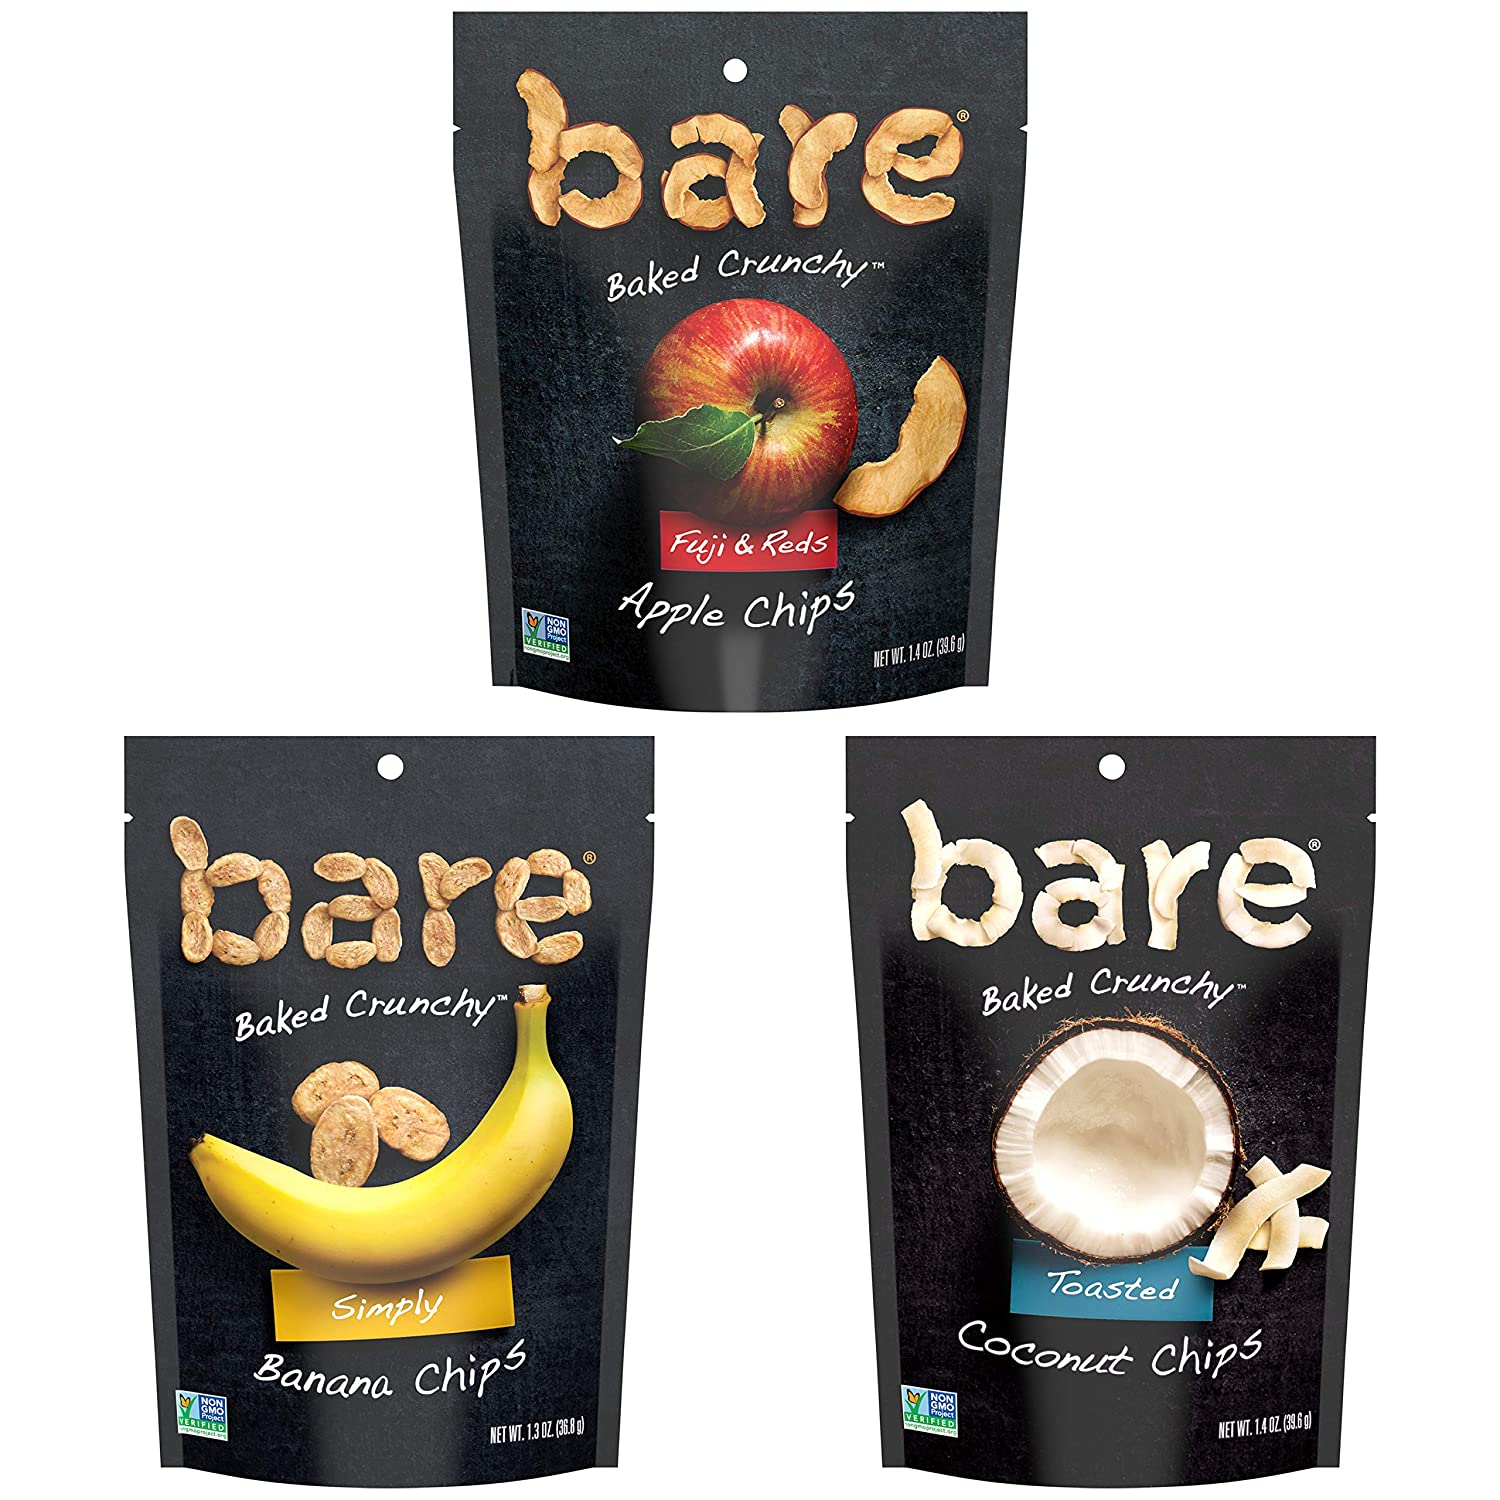 Bare Baked Crunchy Apple Chips, Banana Chips, and Coconut Chips, Variety Pack, Gluten Free, 6 Count